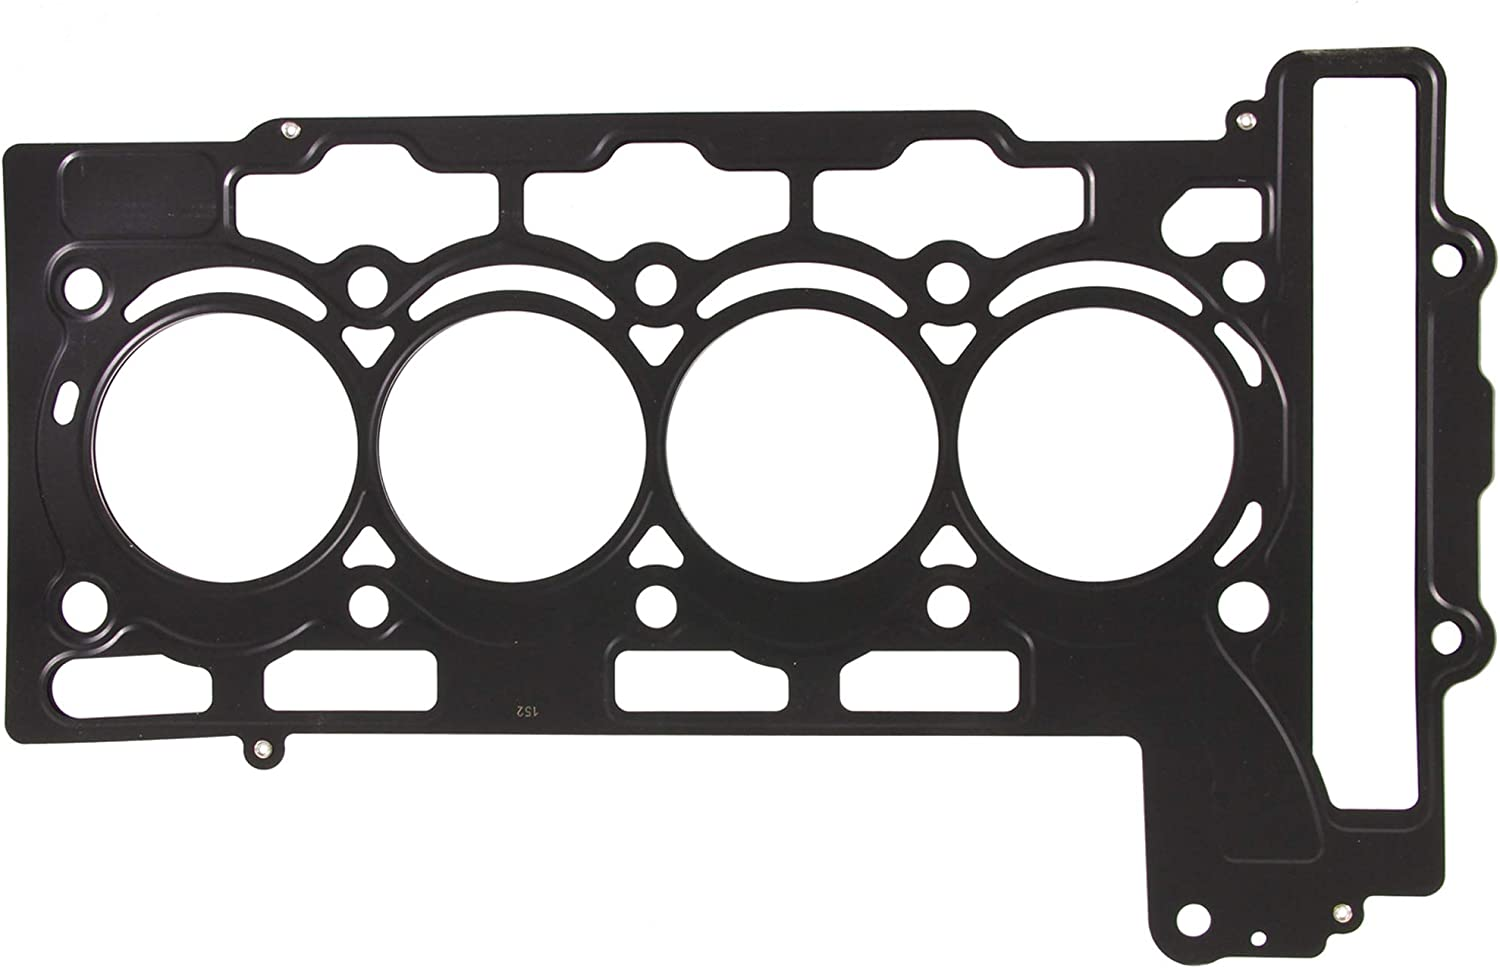 Dealing full price reduction FEL-PRO Max 71% OFF 26453 PT Gasket Head